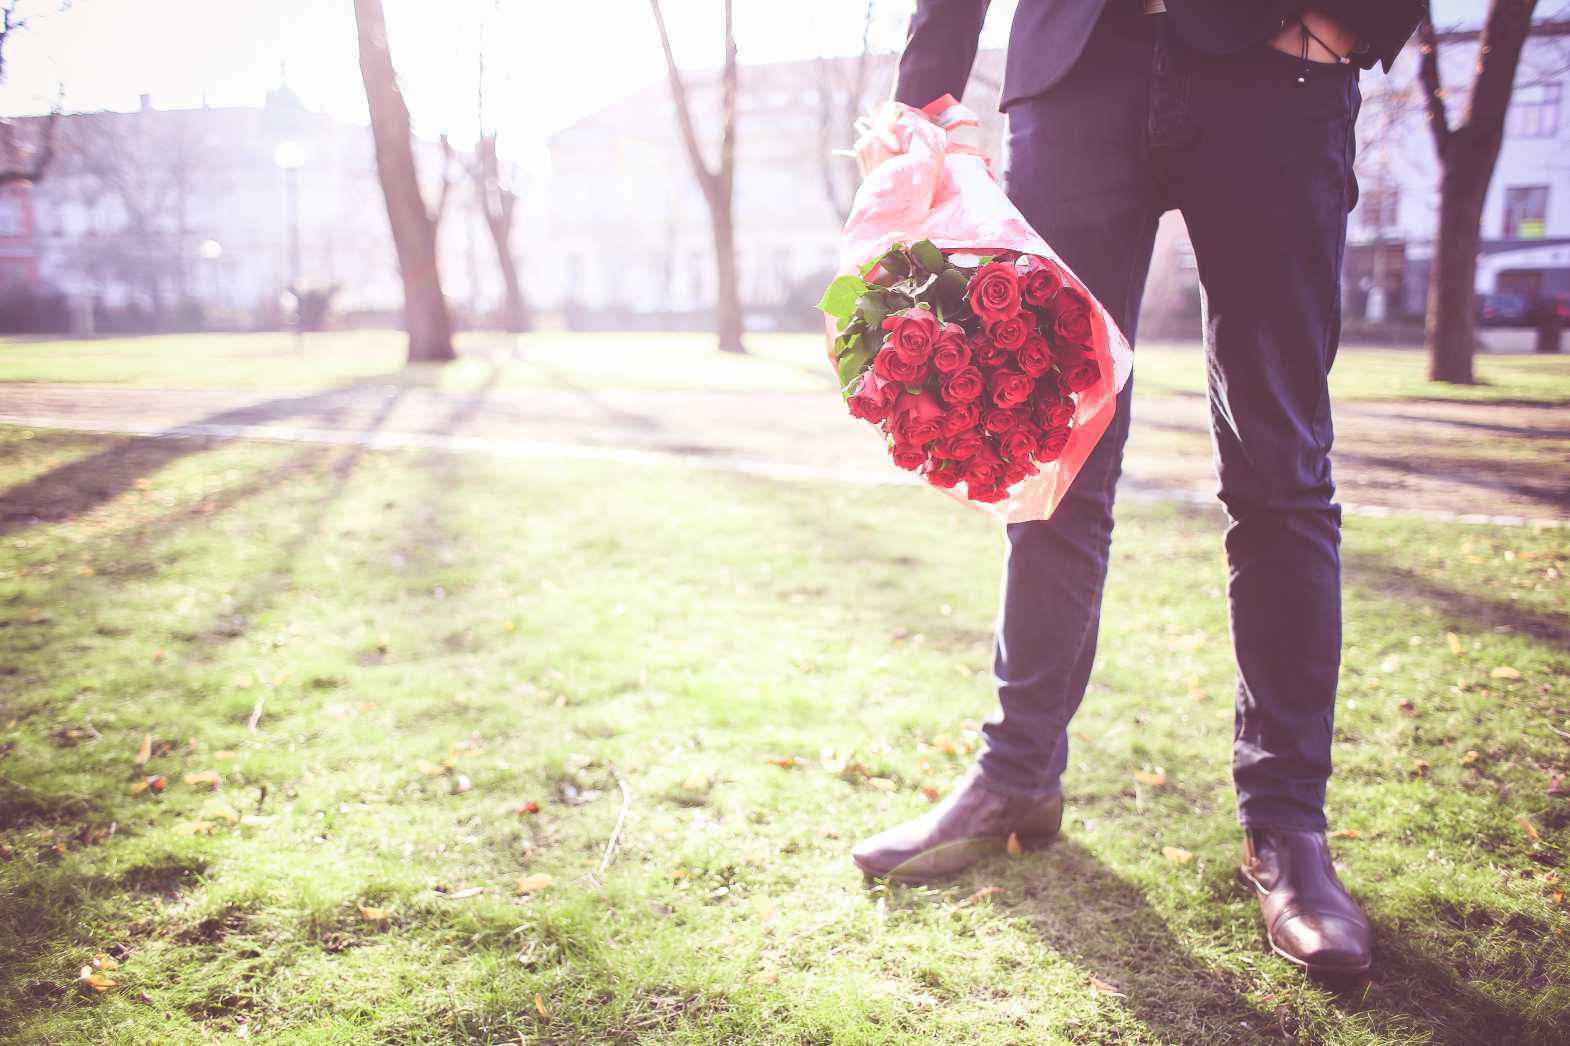 man with roses waiting for his lady free stock photos picjumbo.com  - Valentýnské fotografie zdarma – picjumbo.com